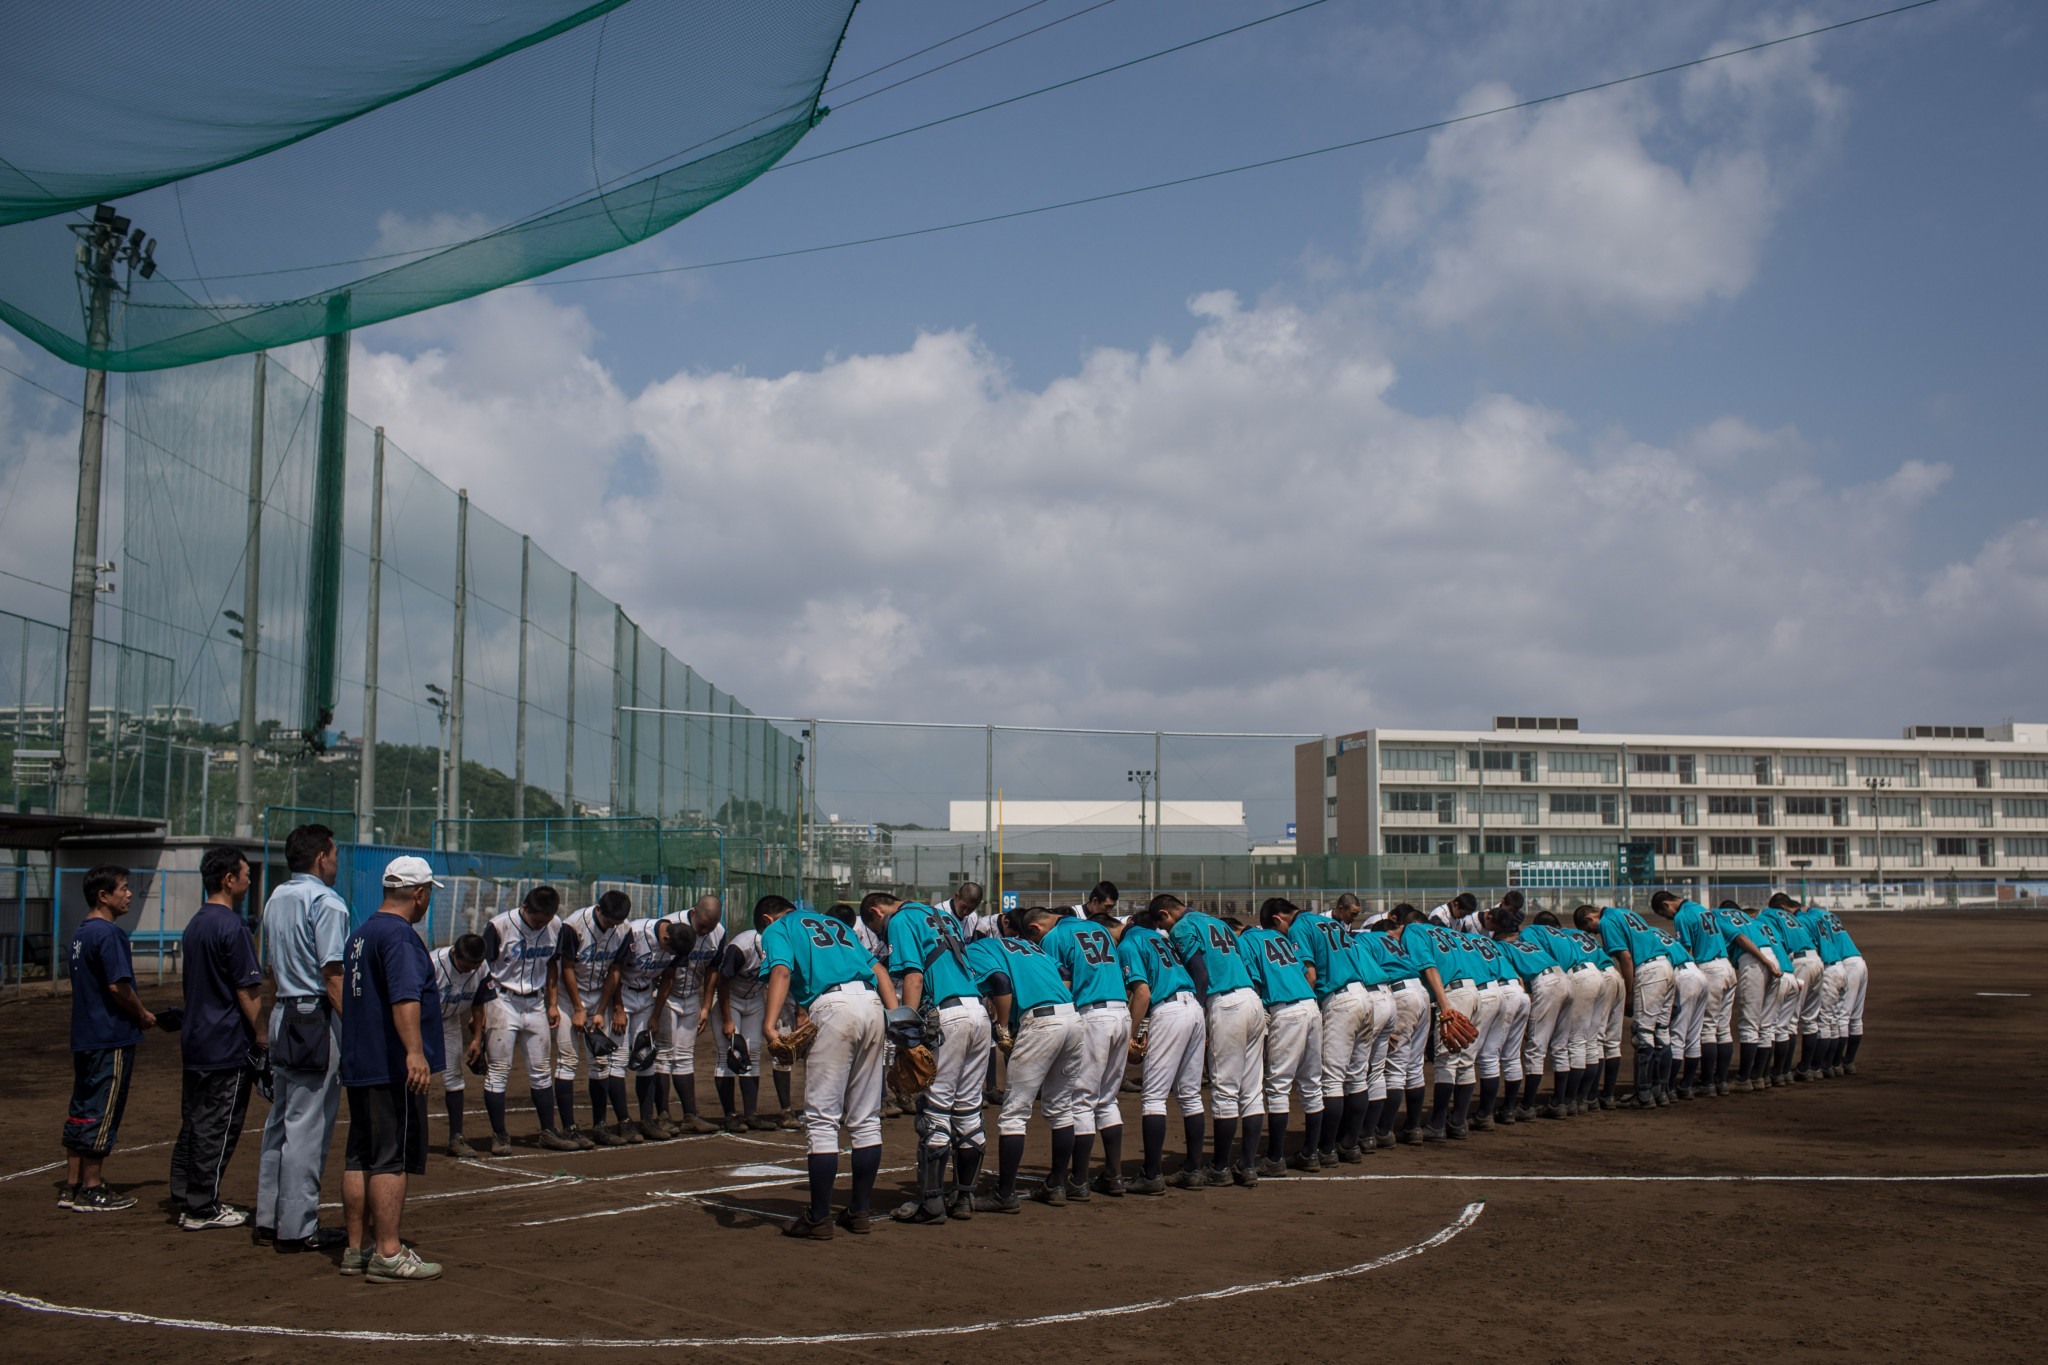 Japan's famed National High School Baseball Championships cancelled over coronavirus